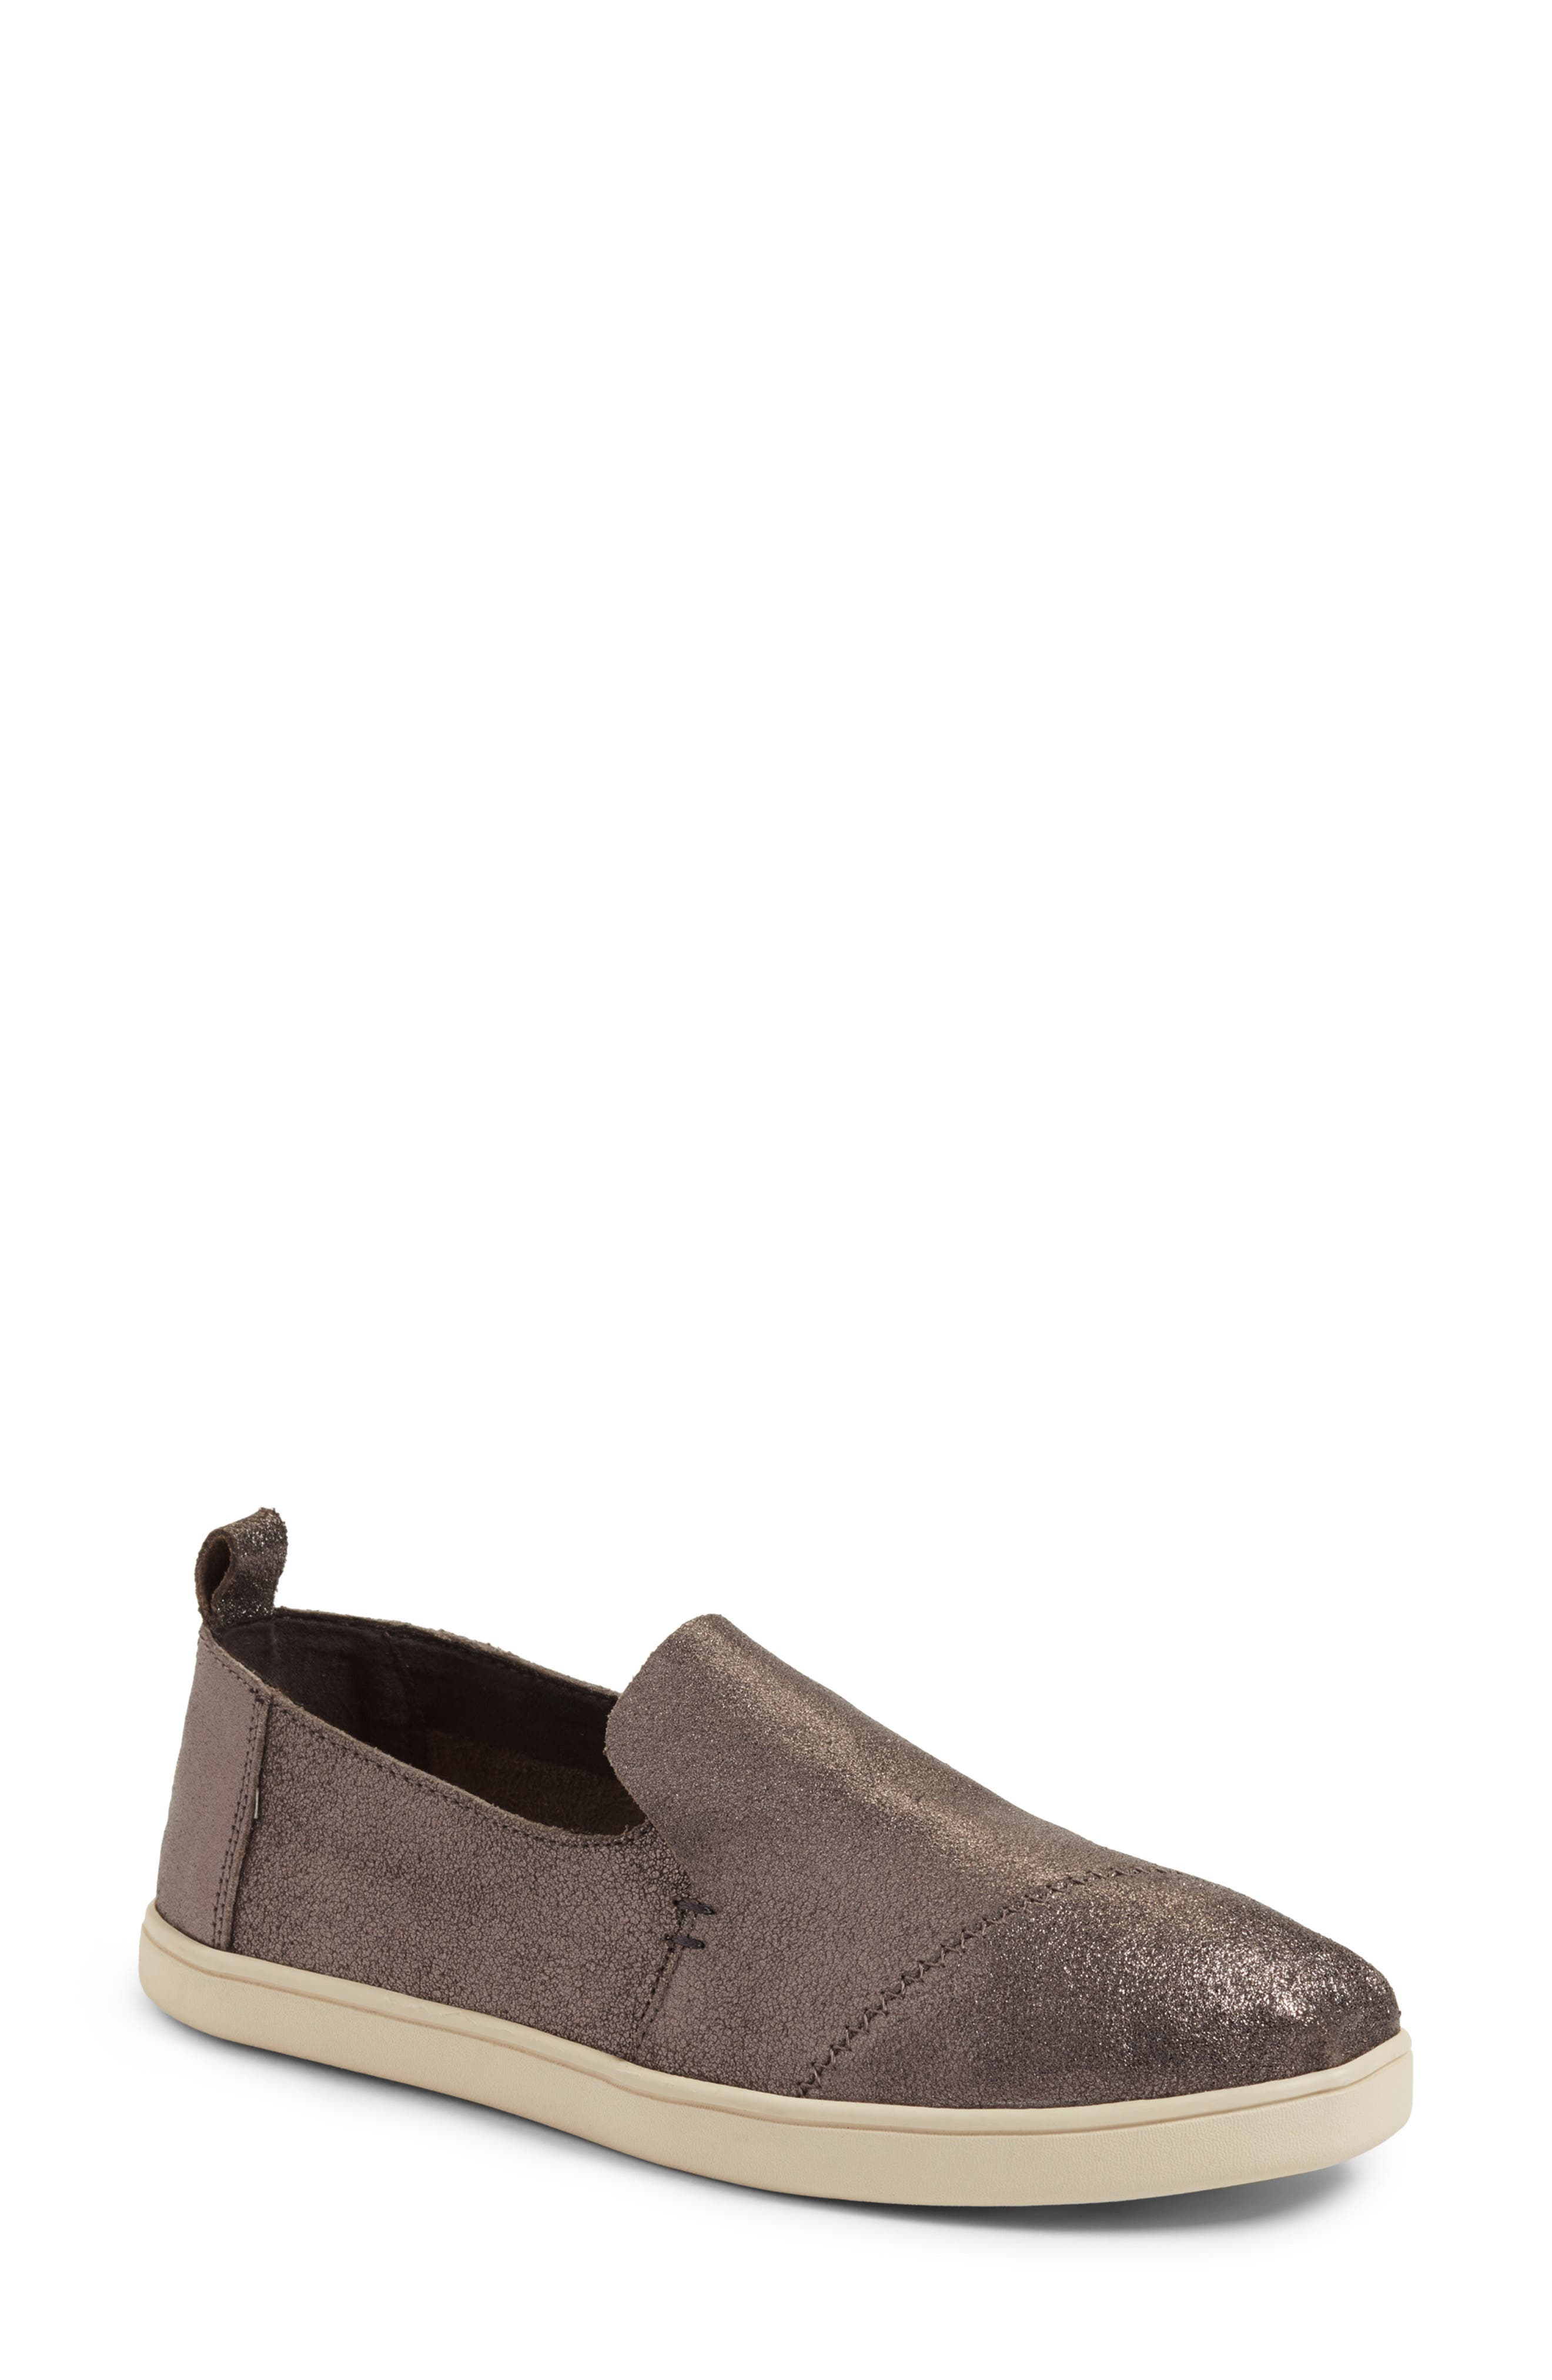 Deconstructed Alpargata Slip-On,                         Main,                         color, Pewter Leather